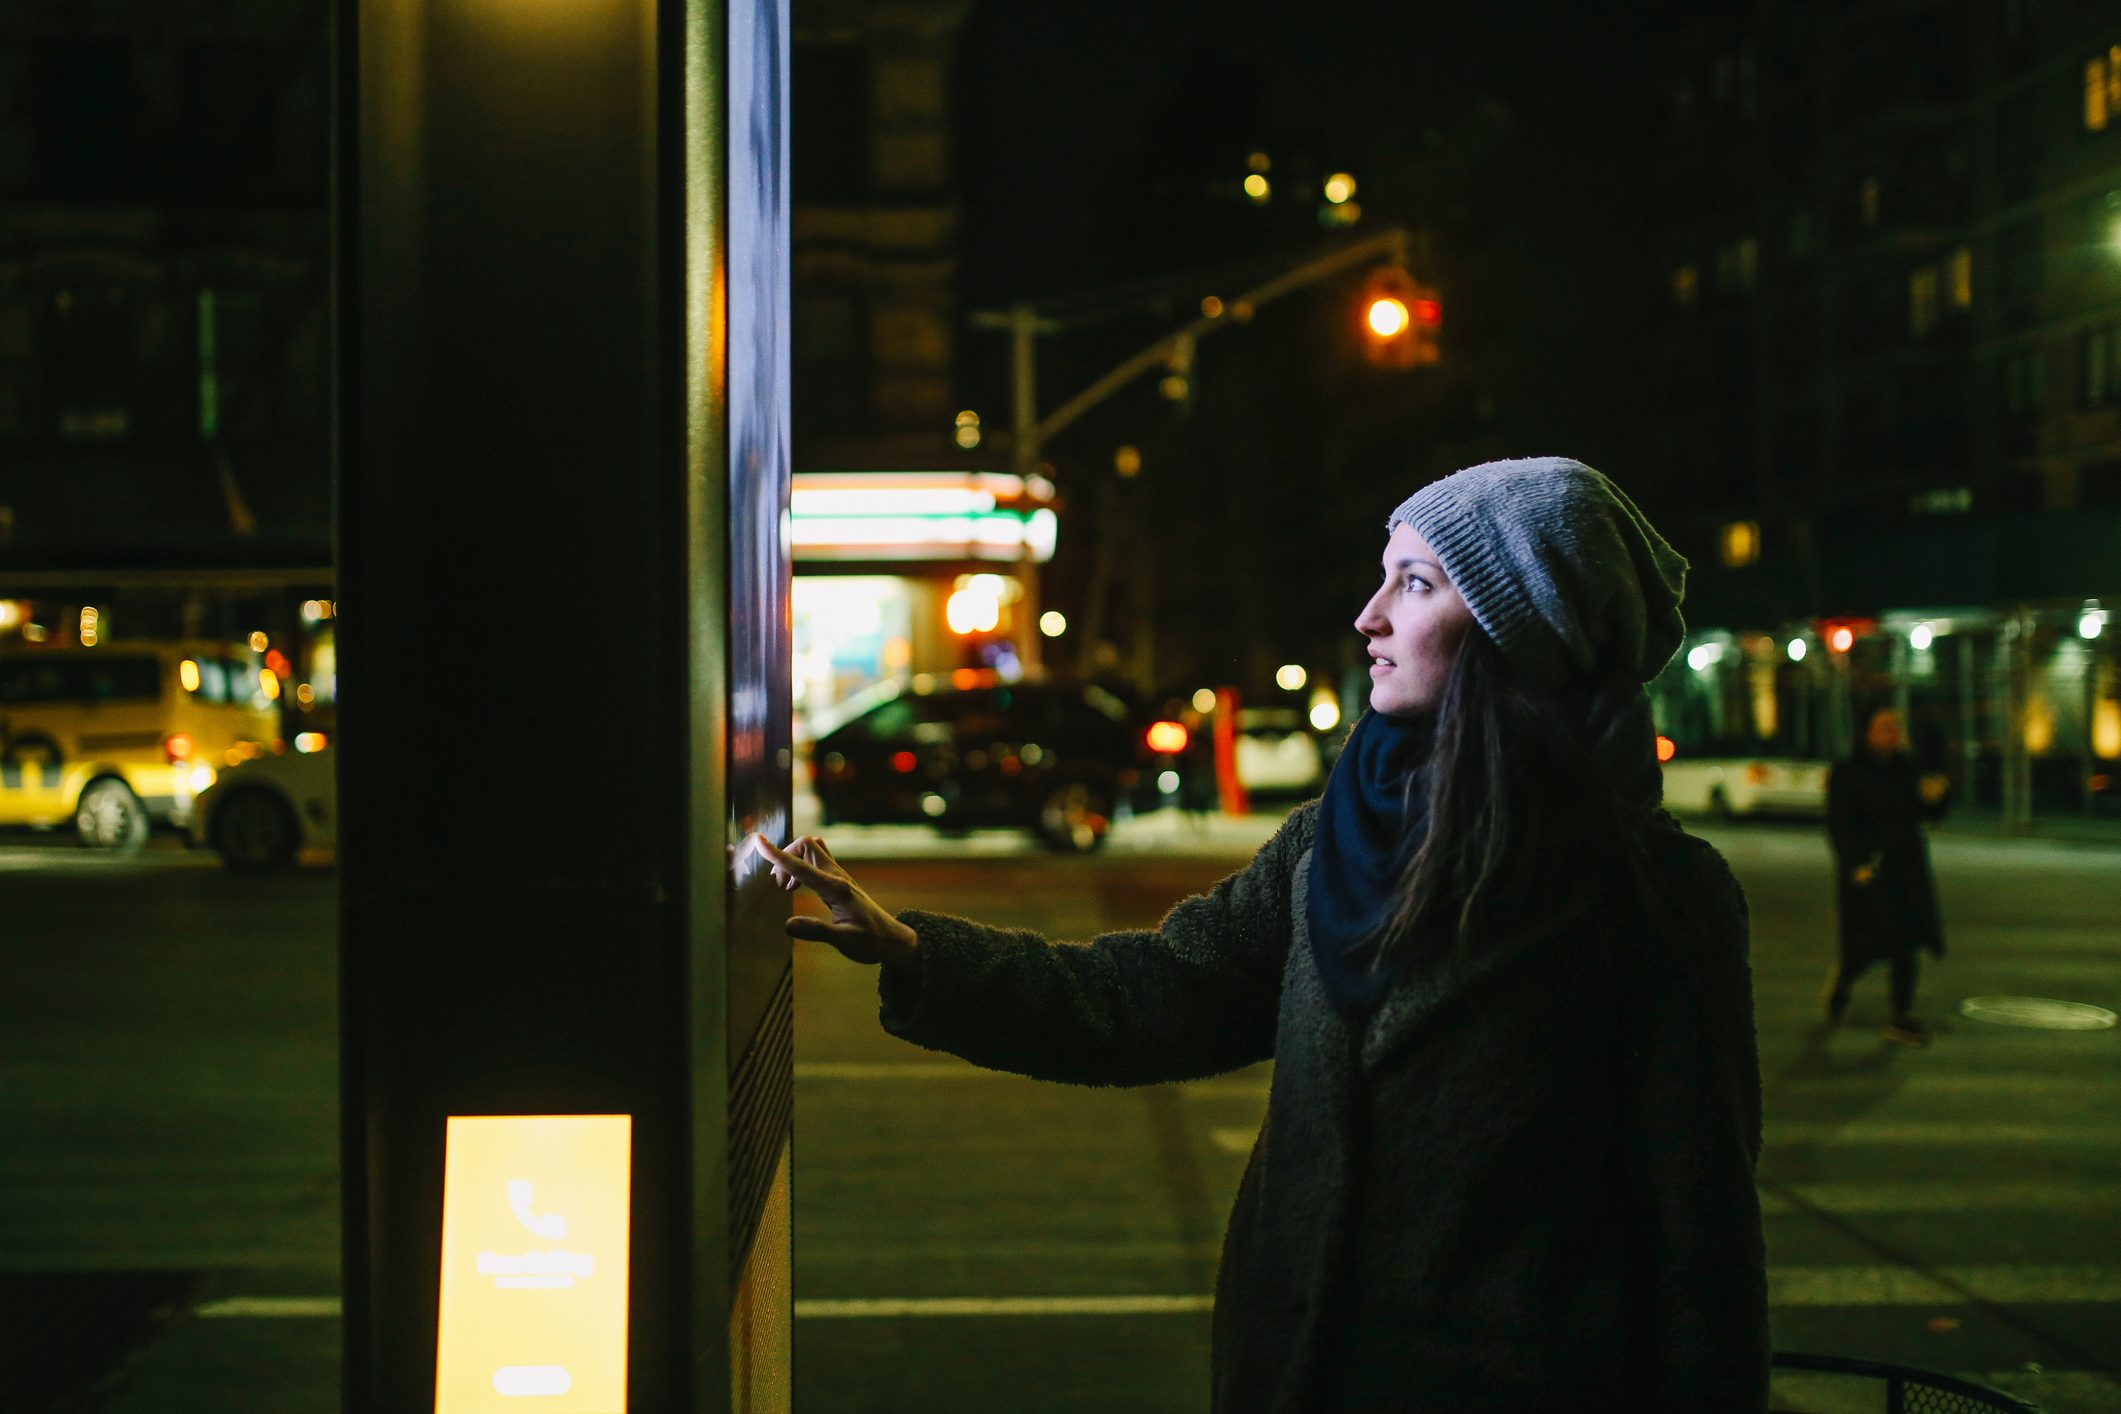 Woman using touch screen city display